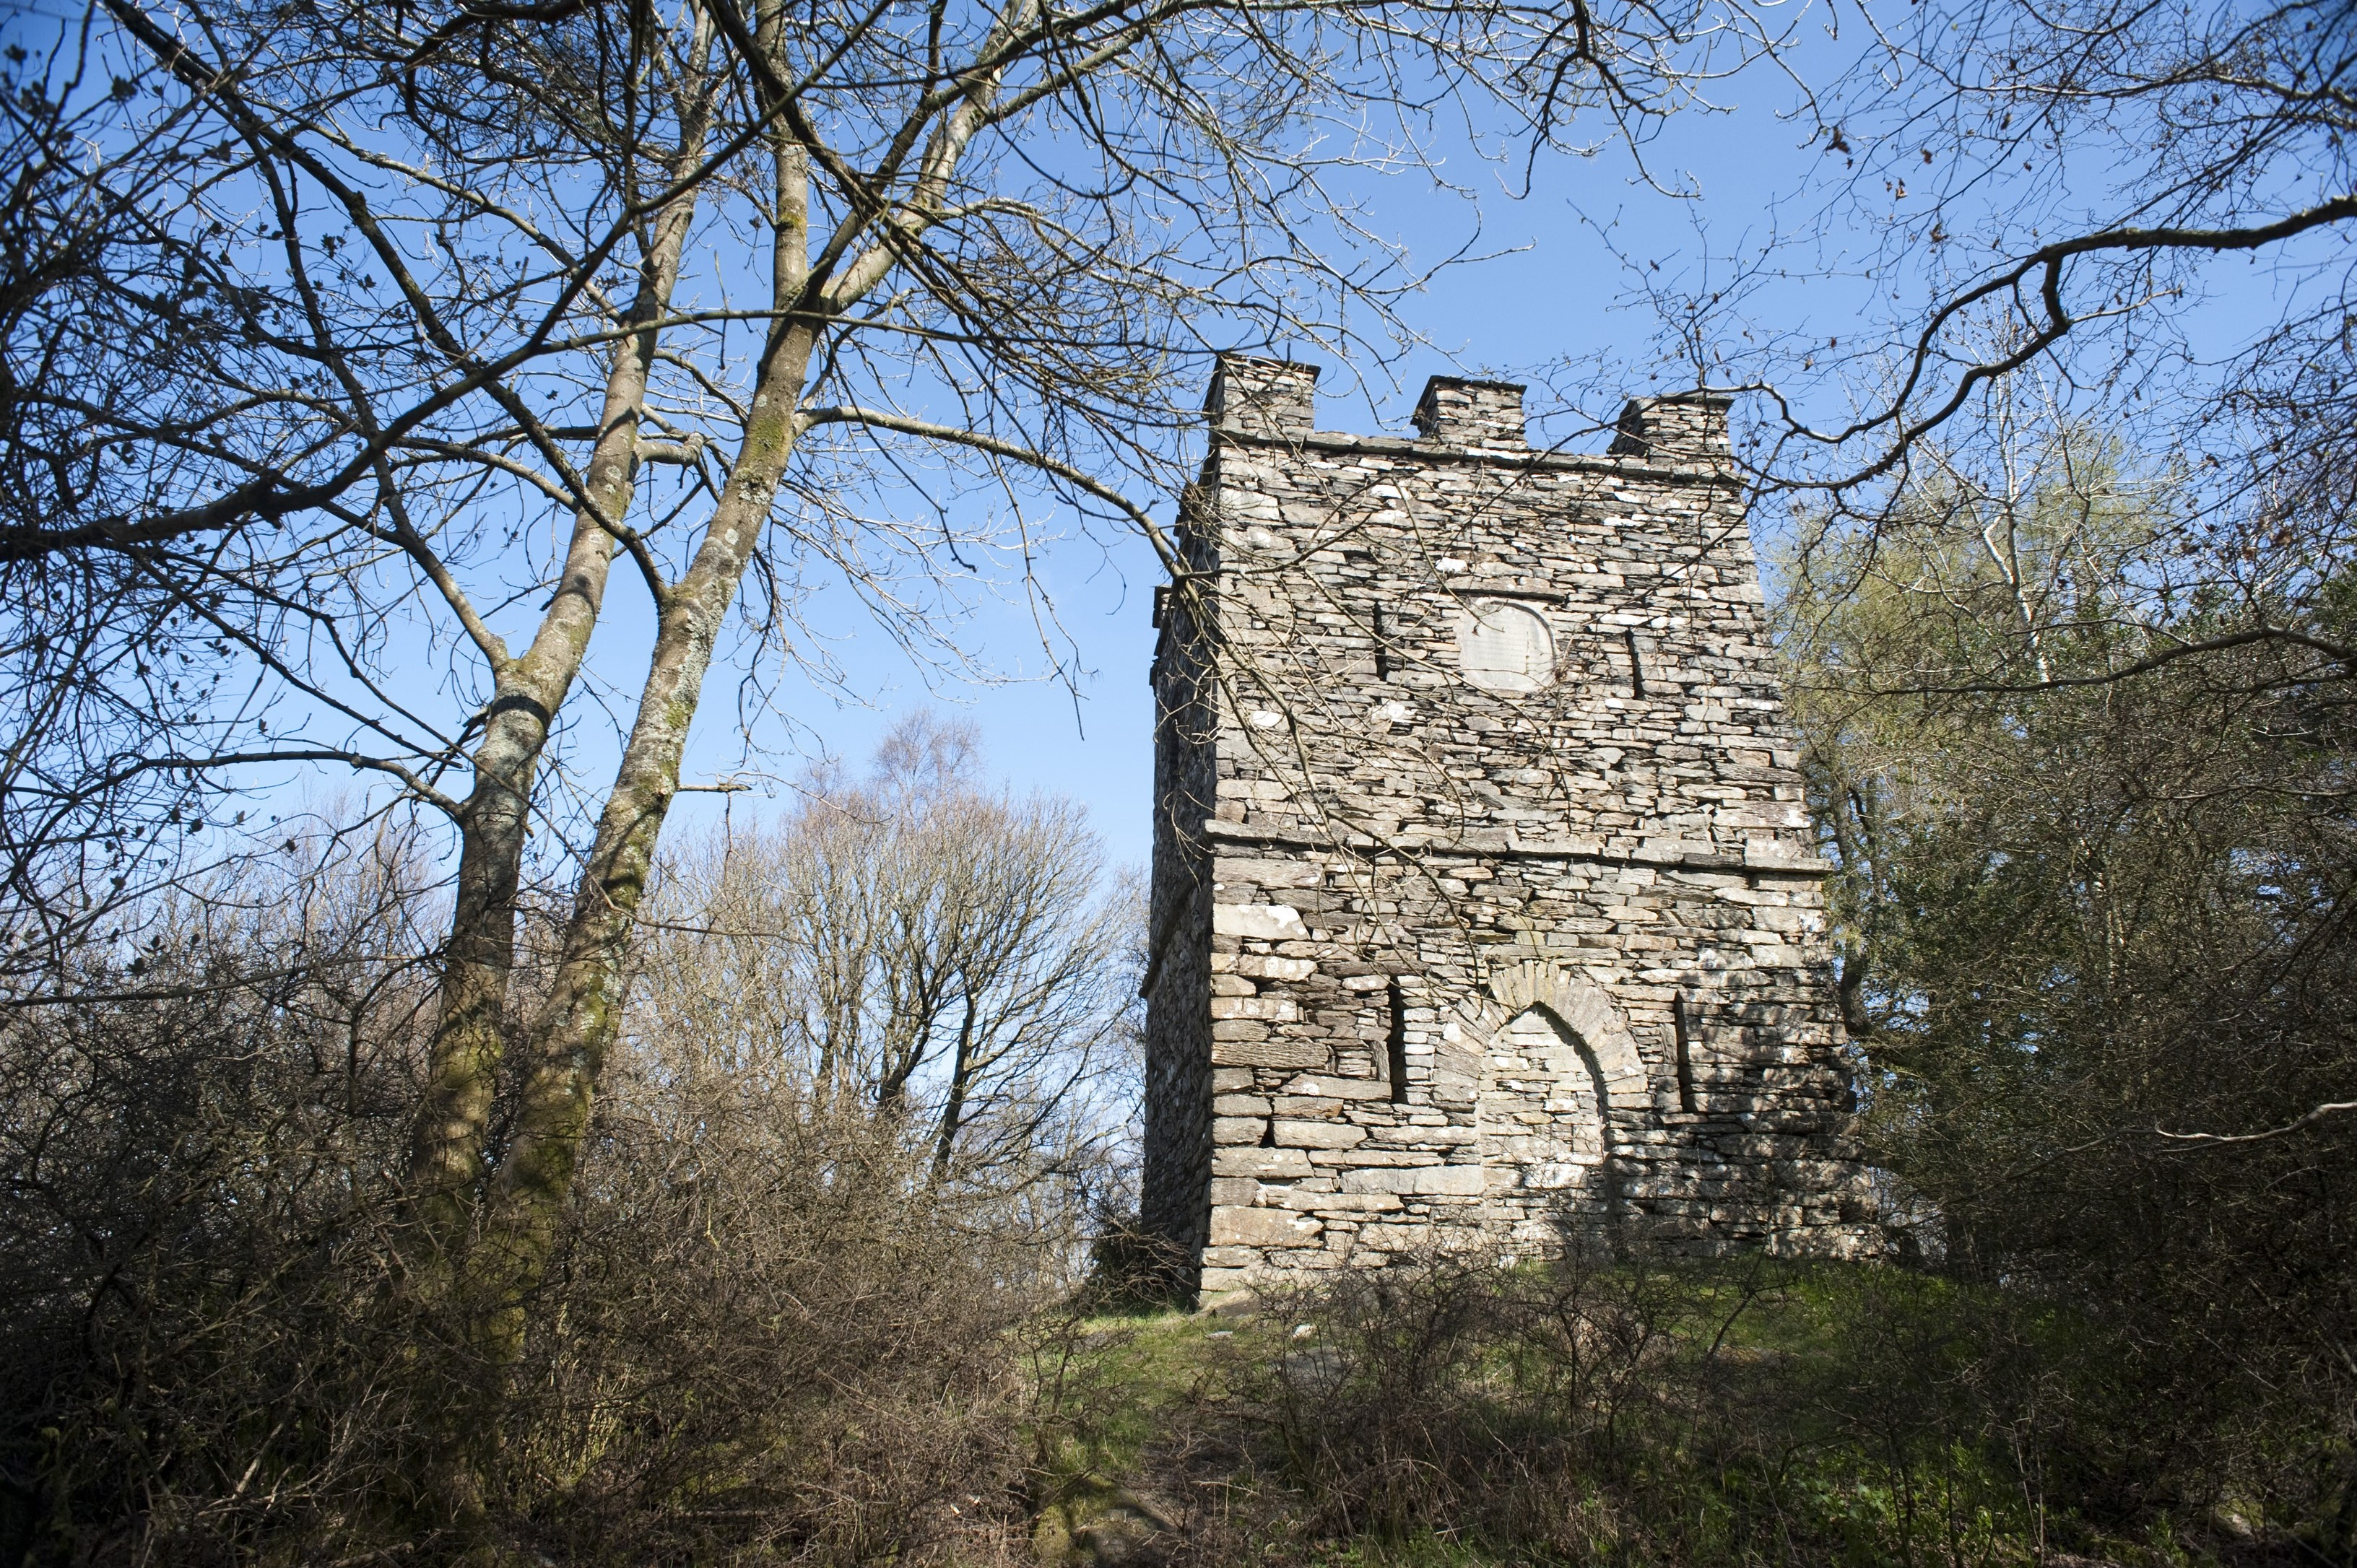 Square stone folly with crenellations in the forest, a building built for whimsical reasons or as a conversation piece during Victorian times